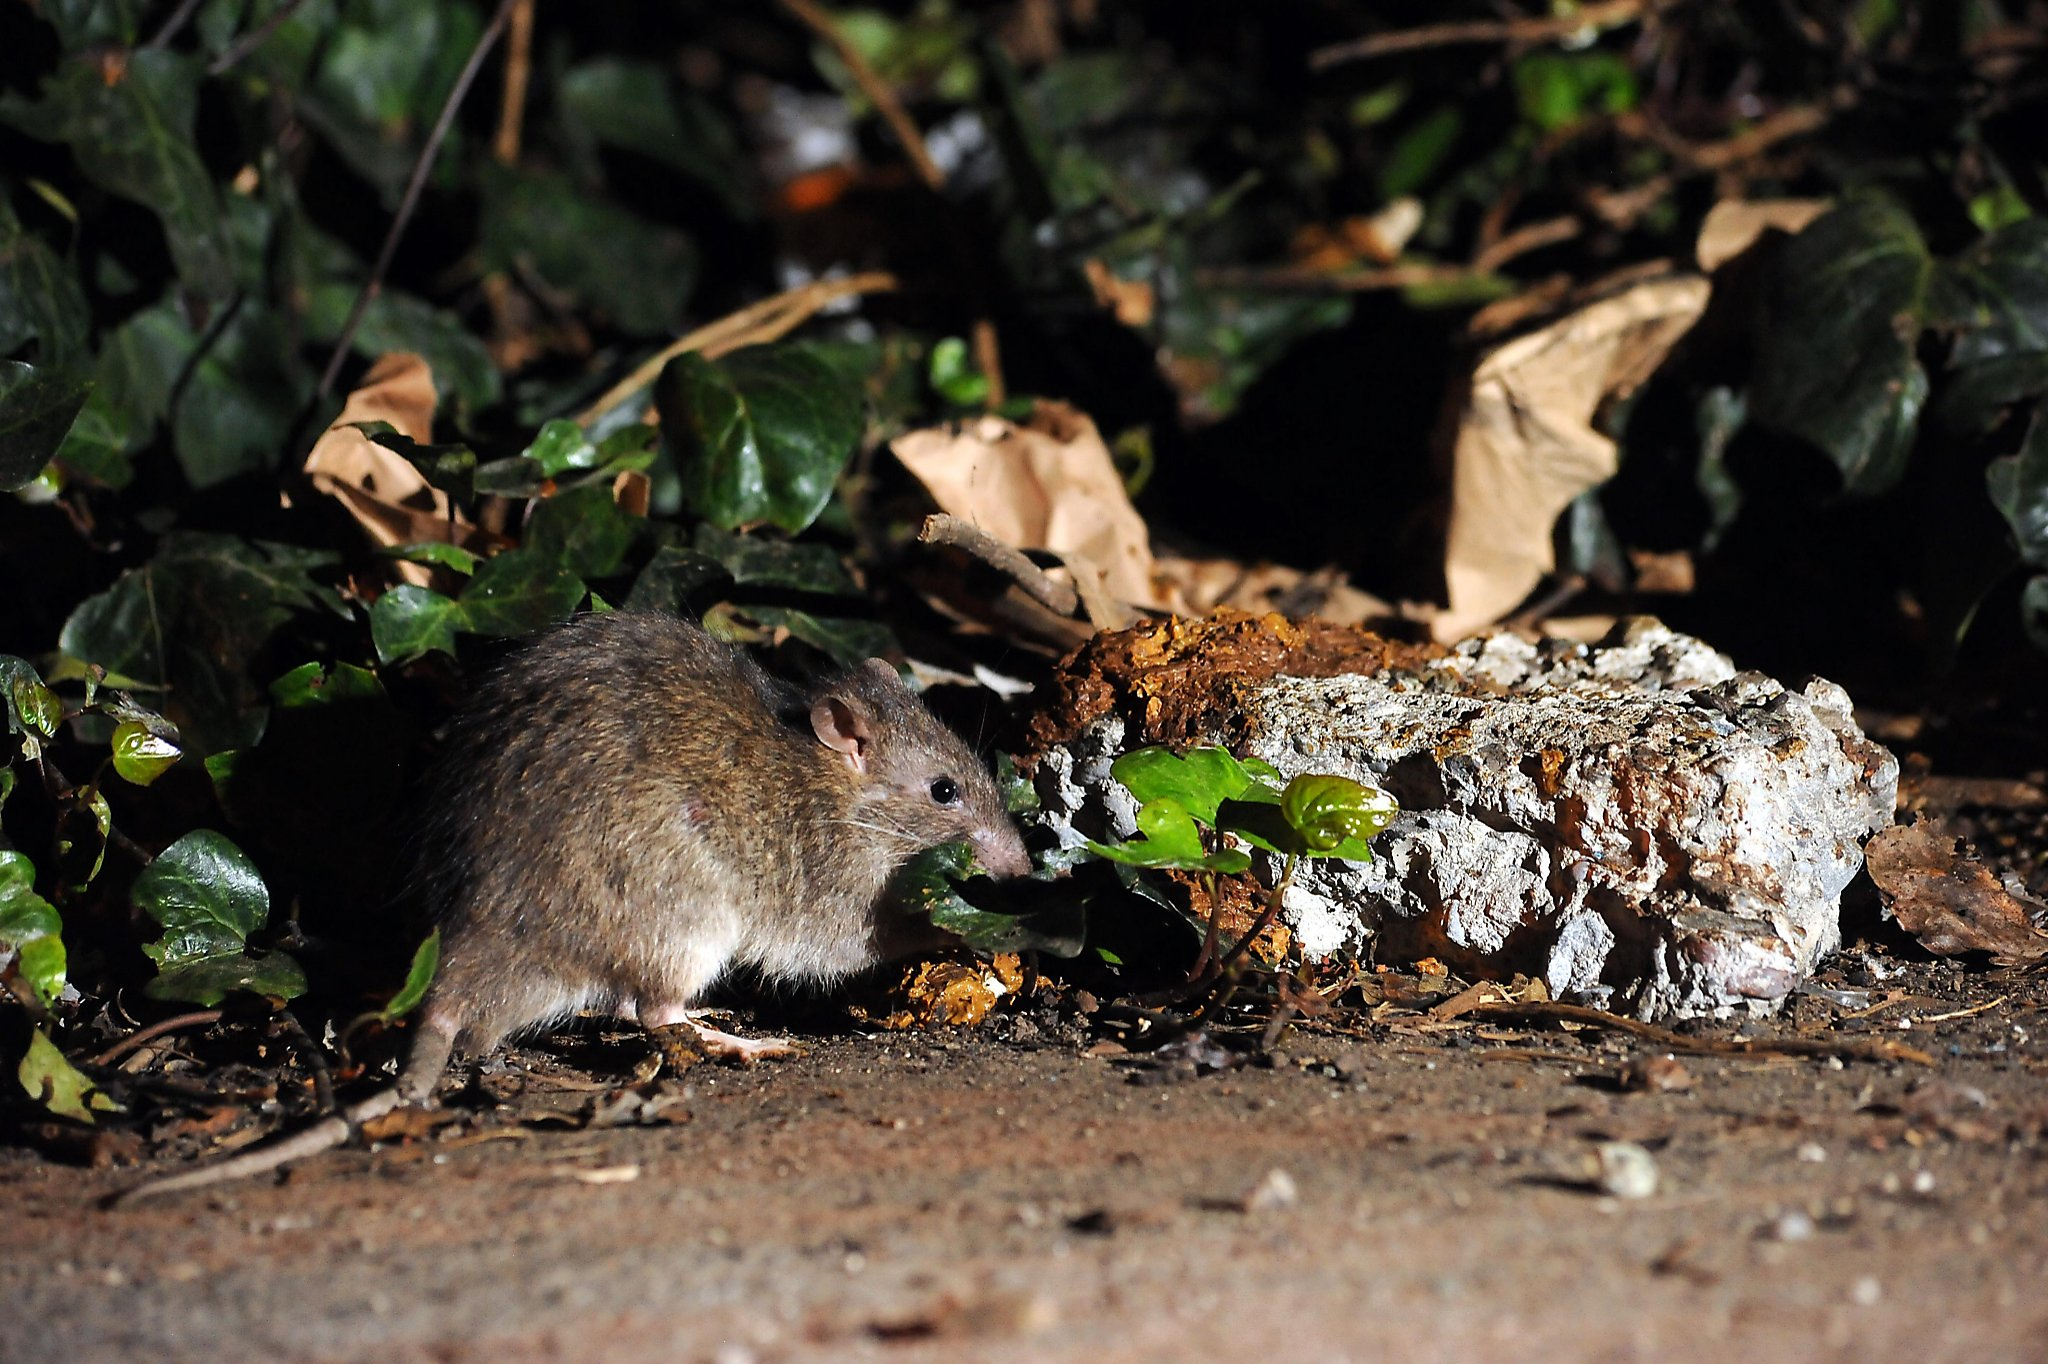 rat complaints in san francisco have surged over the past five